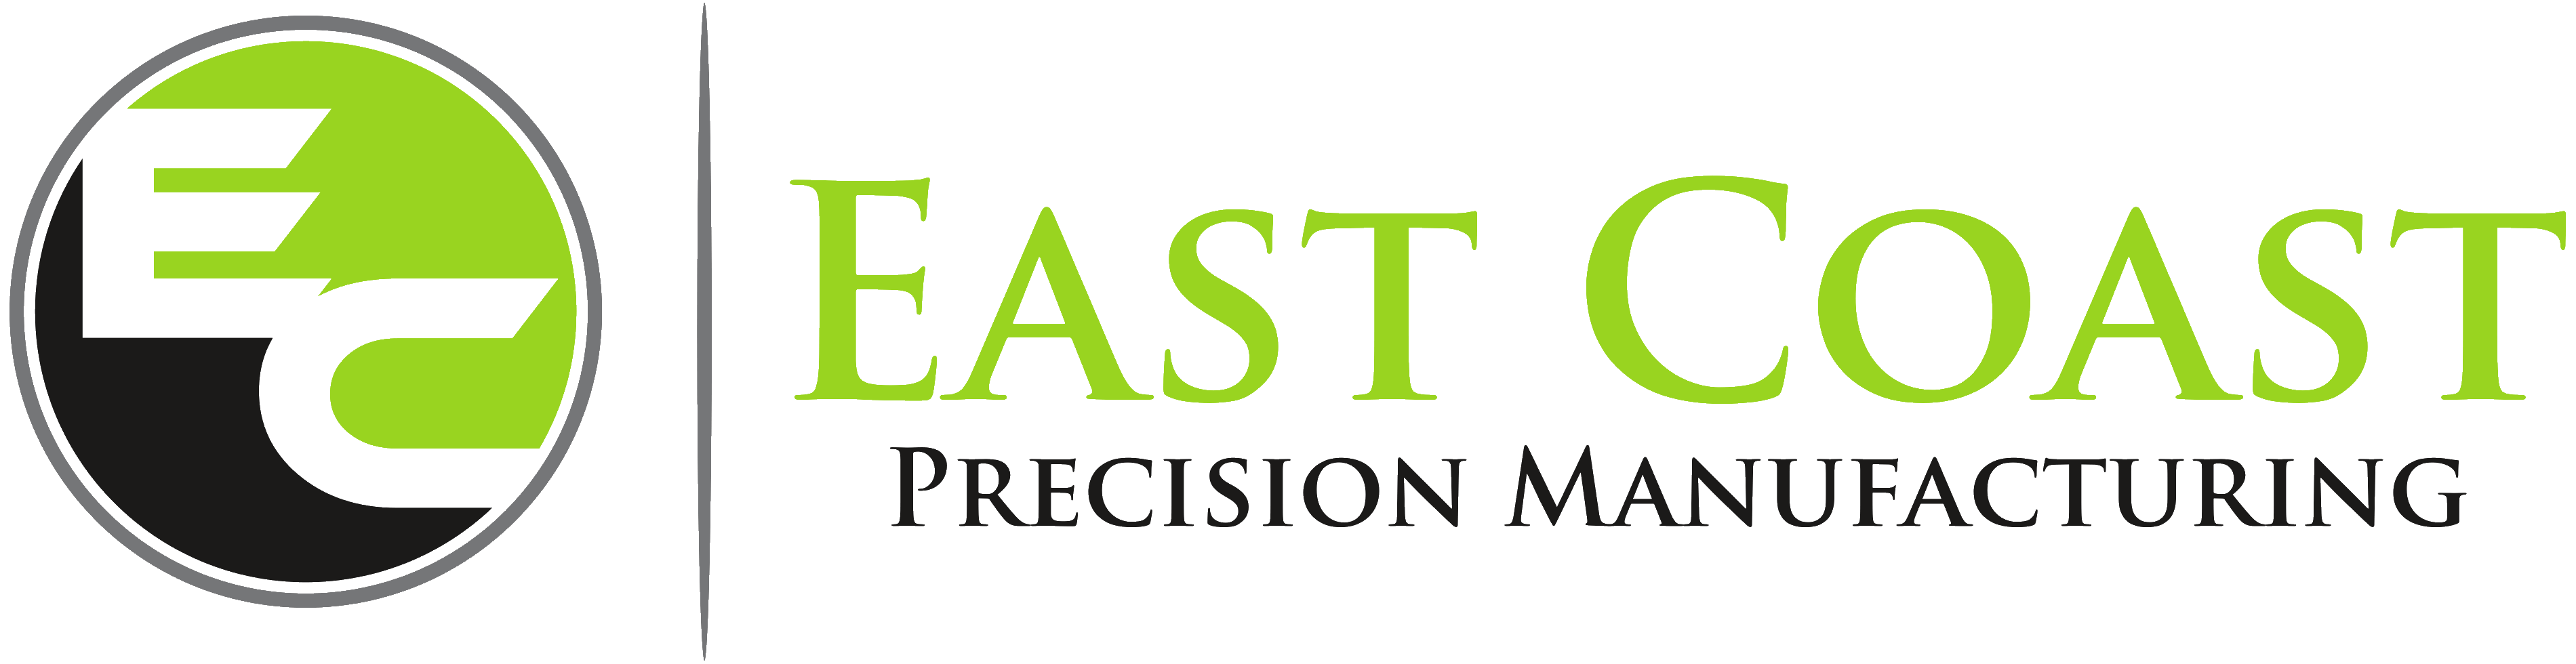 east coast precision manufacturing logo - plastic machining & vapor polishing services chester CT